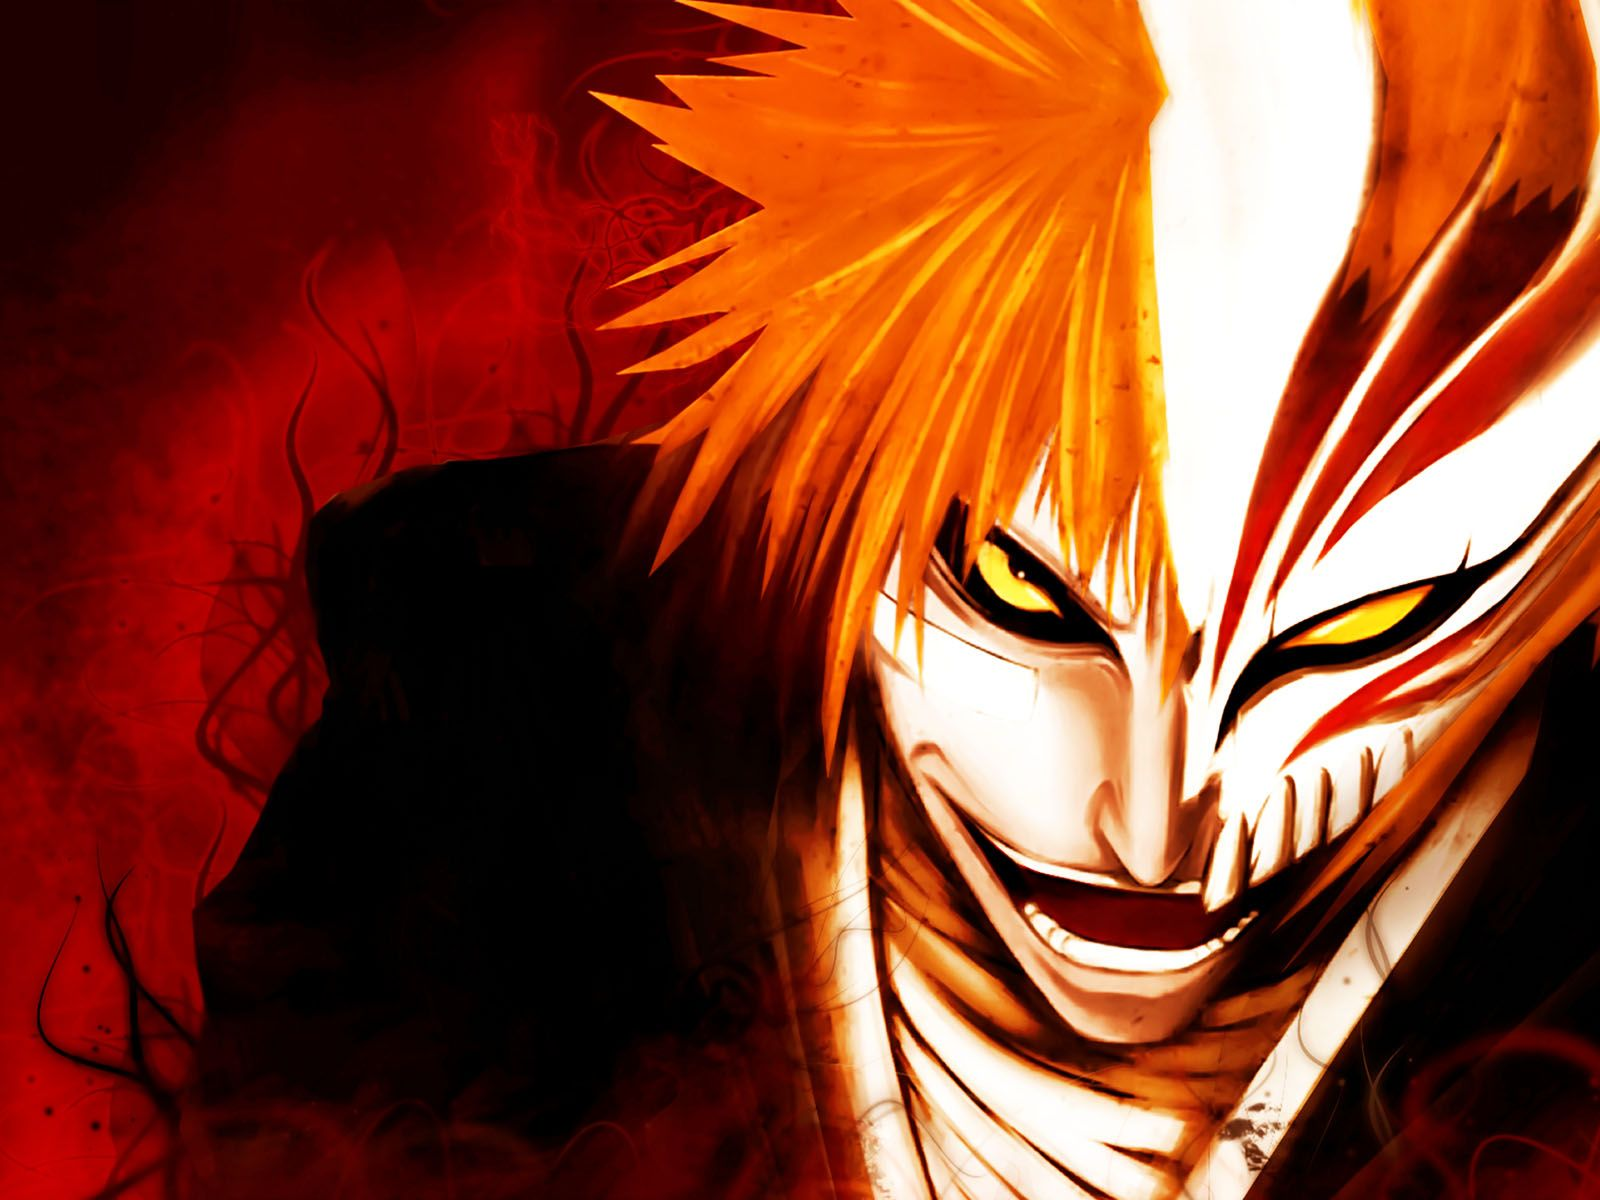 Bleach Downloads Anime Android Wallpapers Projects To Try Pinterest Anime